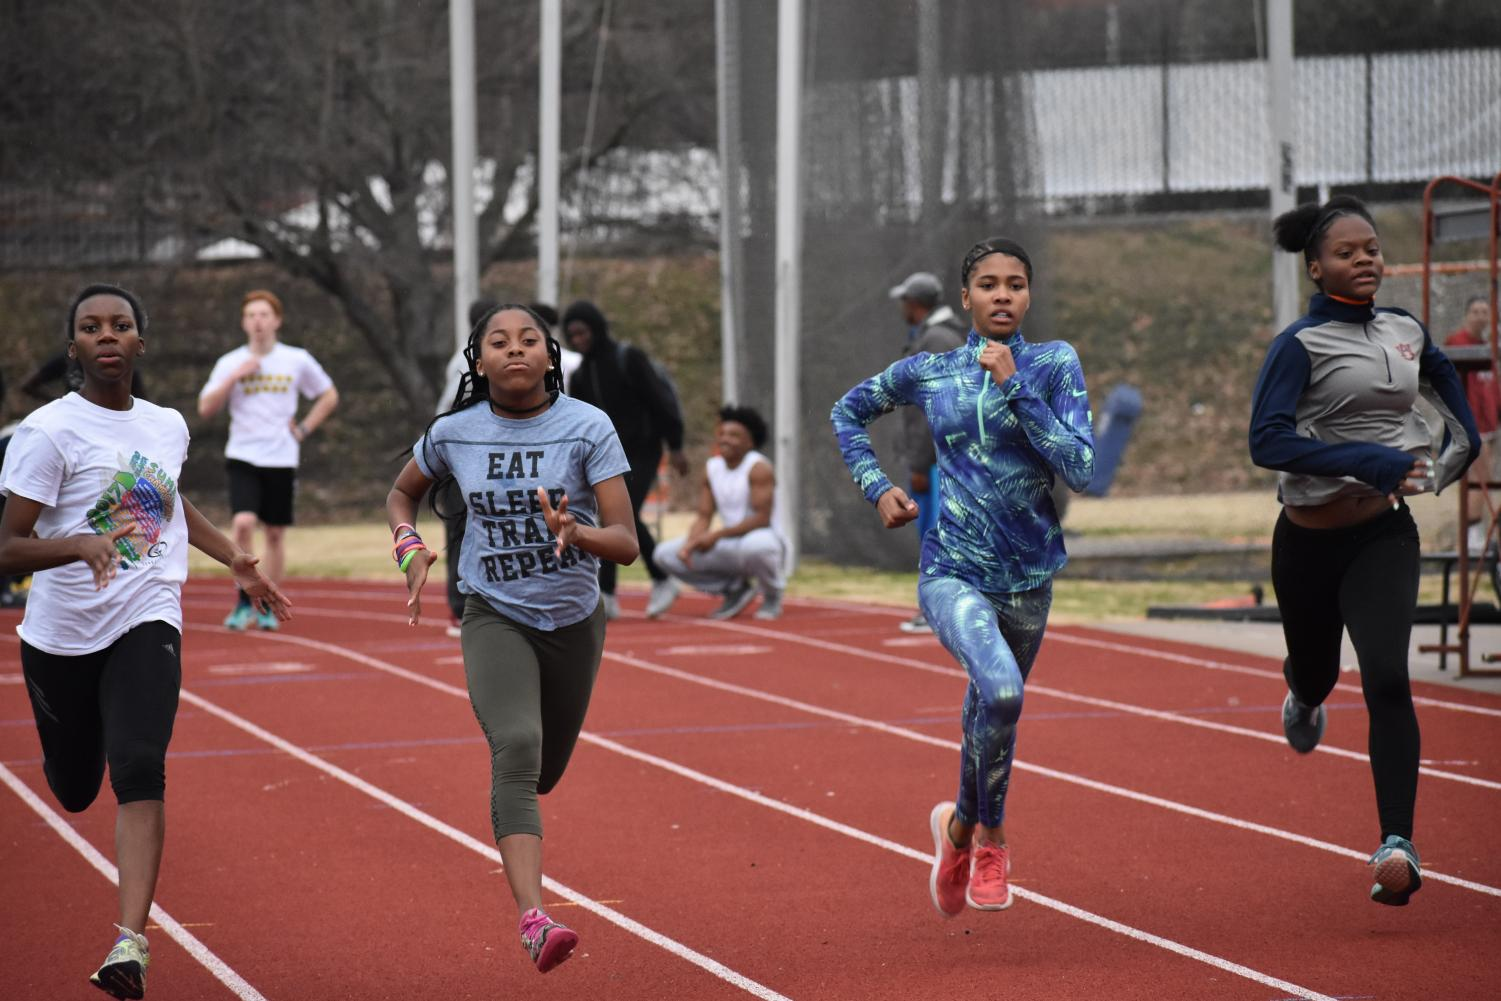 Freshman sprinters (left to right) Kendall Green, MeKenze Kelley, Erin Boone and Ameah Richardson open their high school track careers with 12x100 meter sprints with a minutes rest on the first day of practice on Jan. 22, 2018.